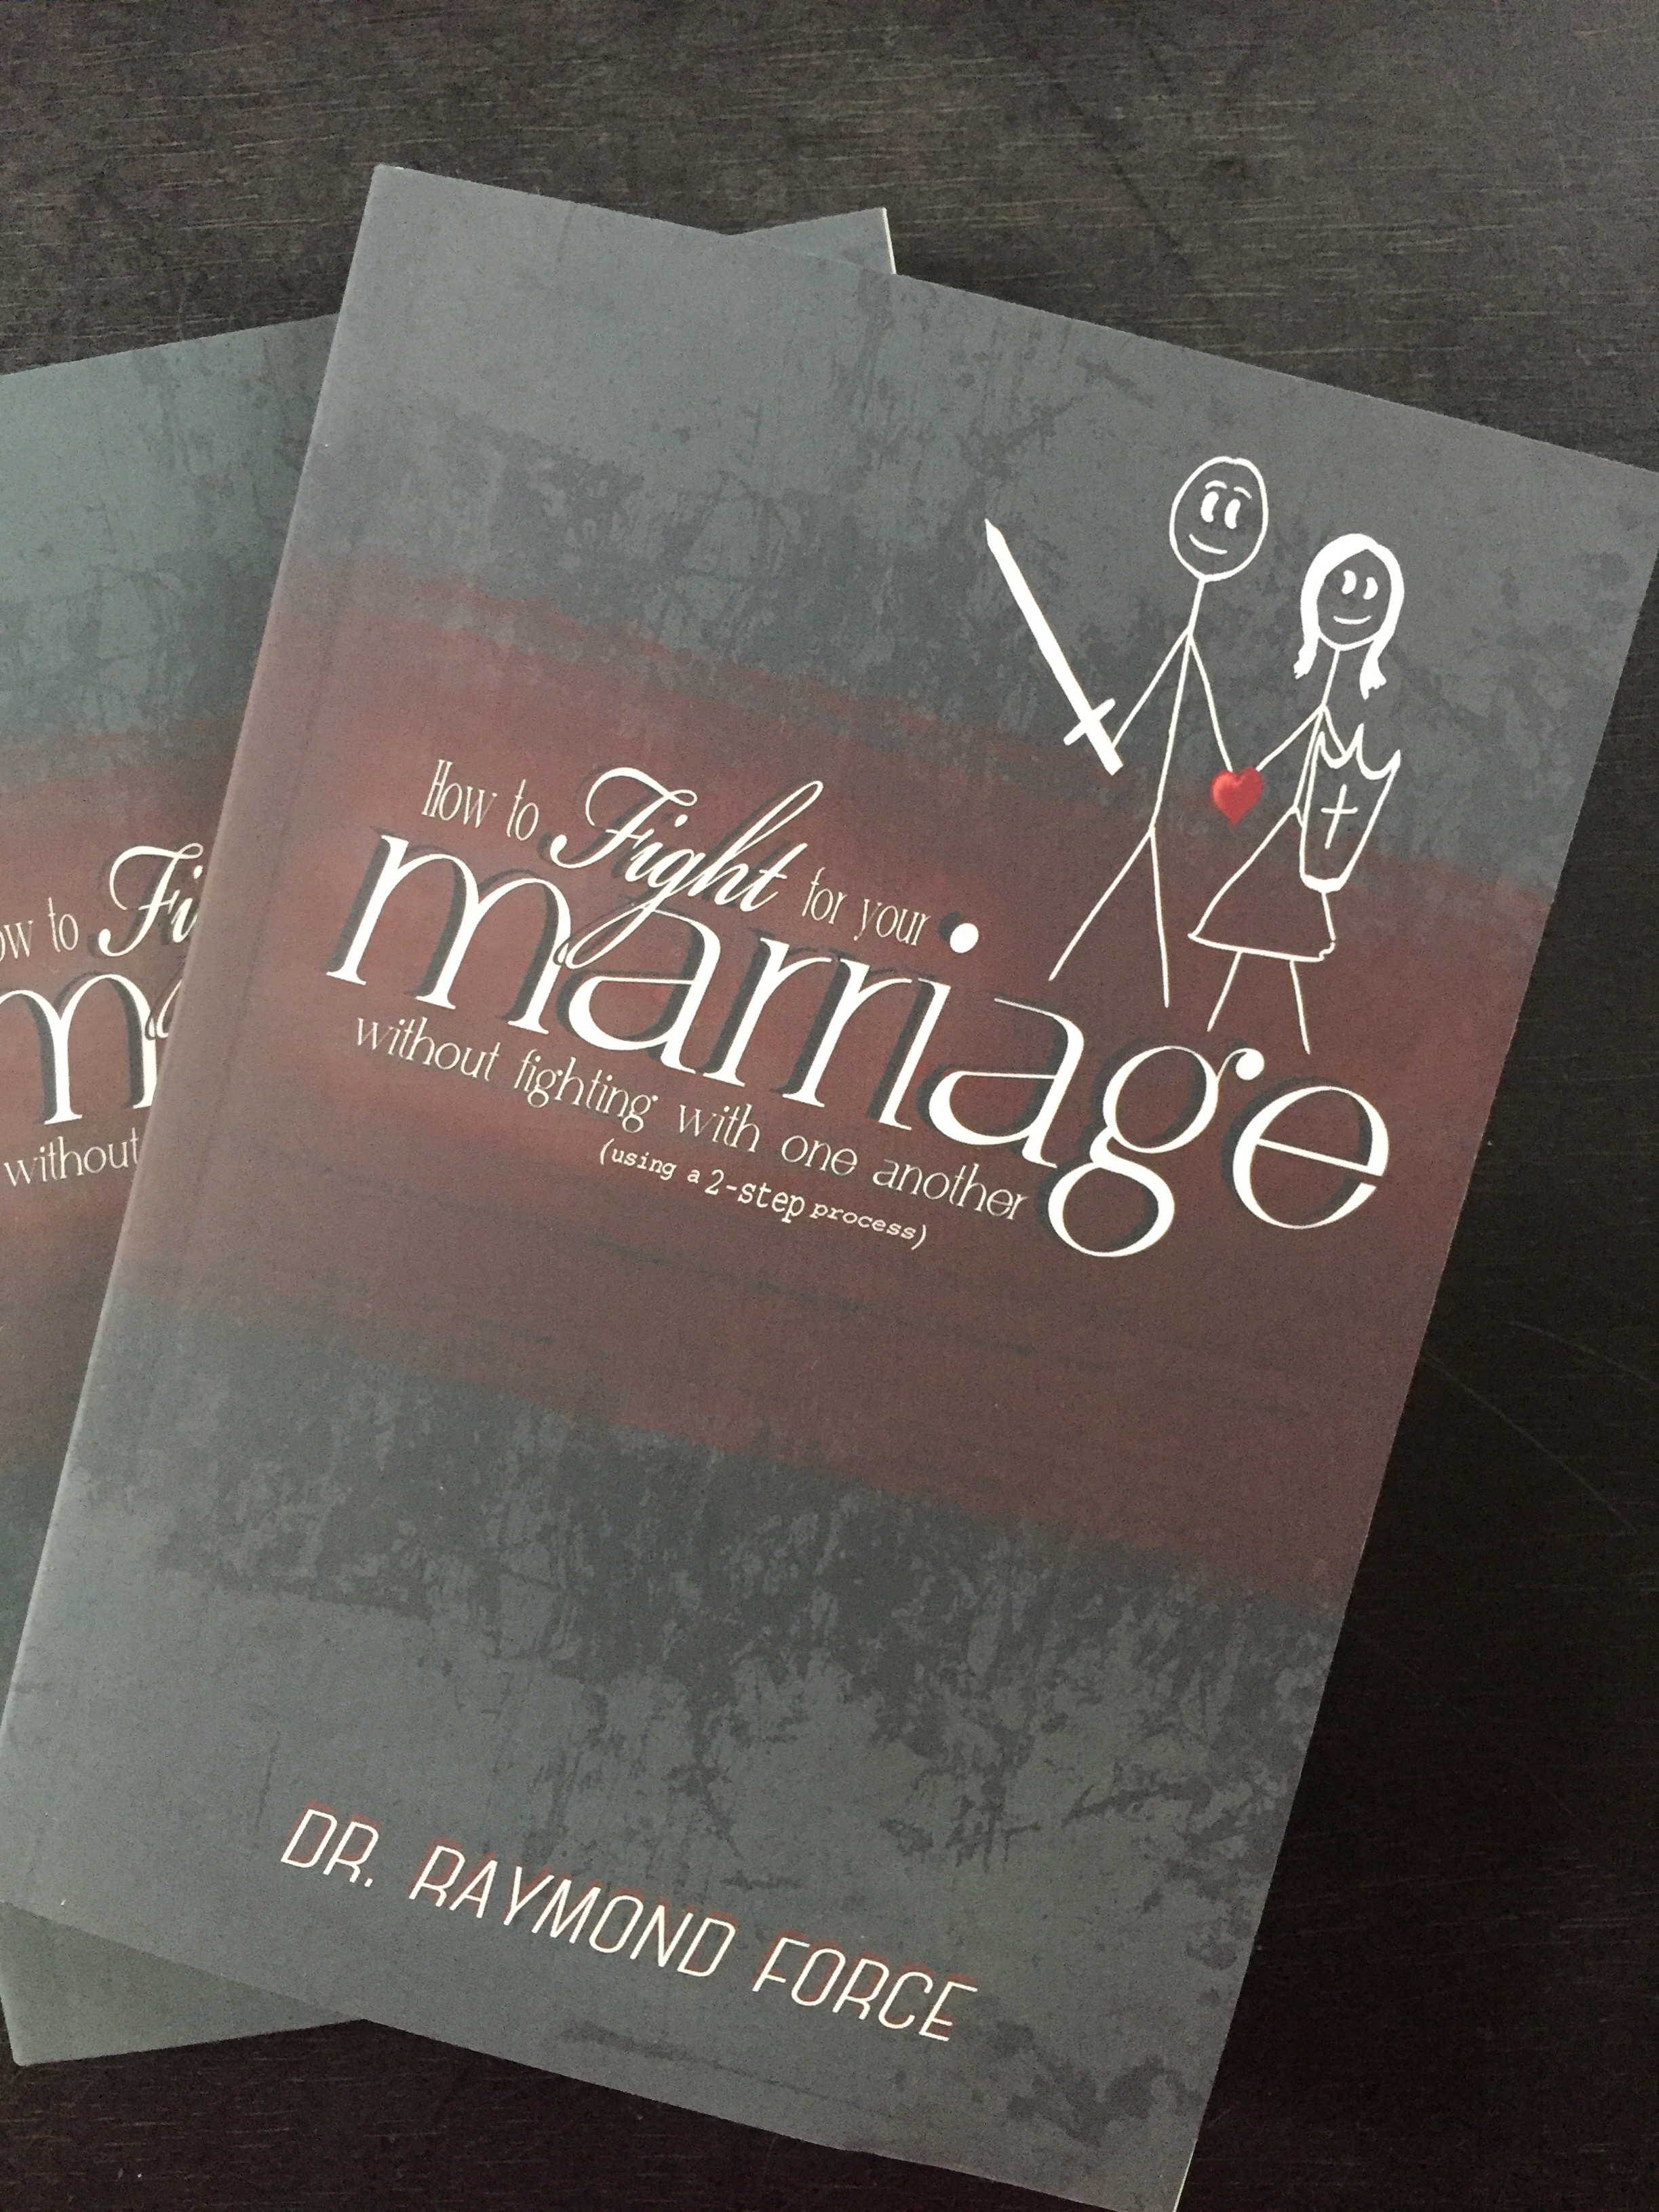 Images of couples dating devotional for couples